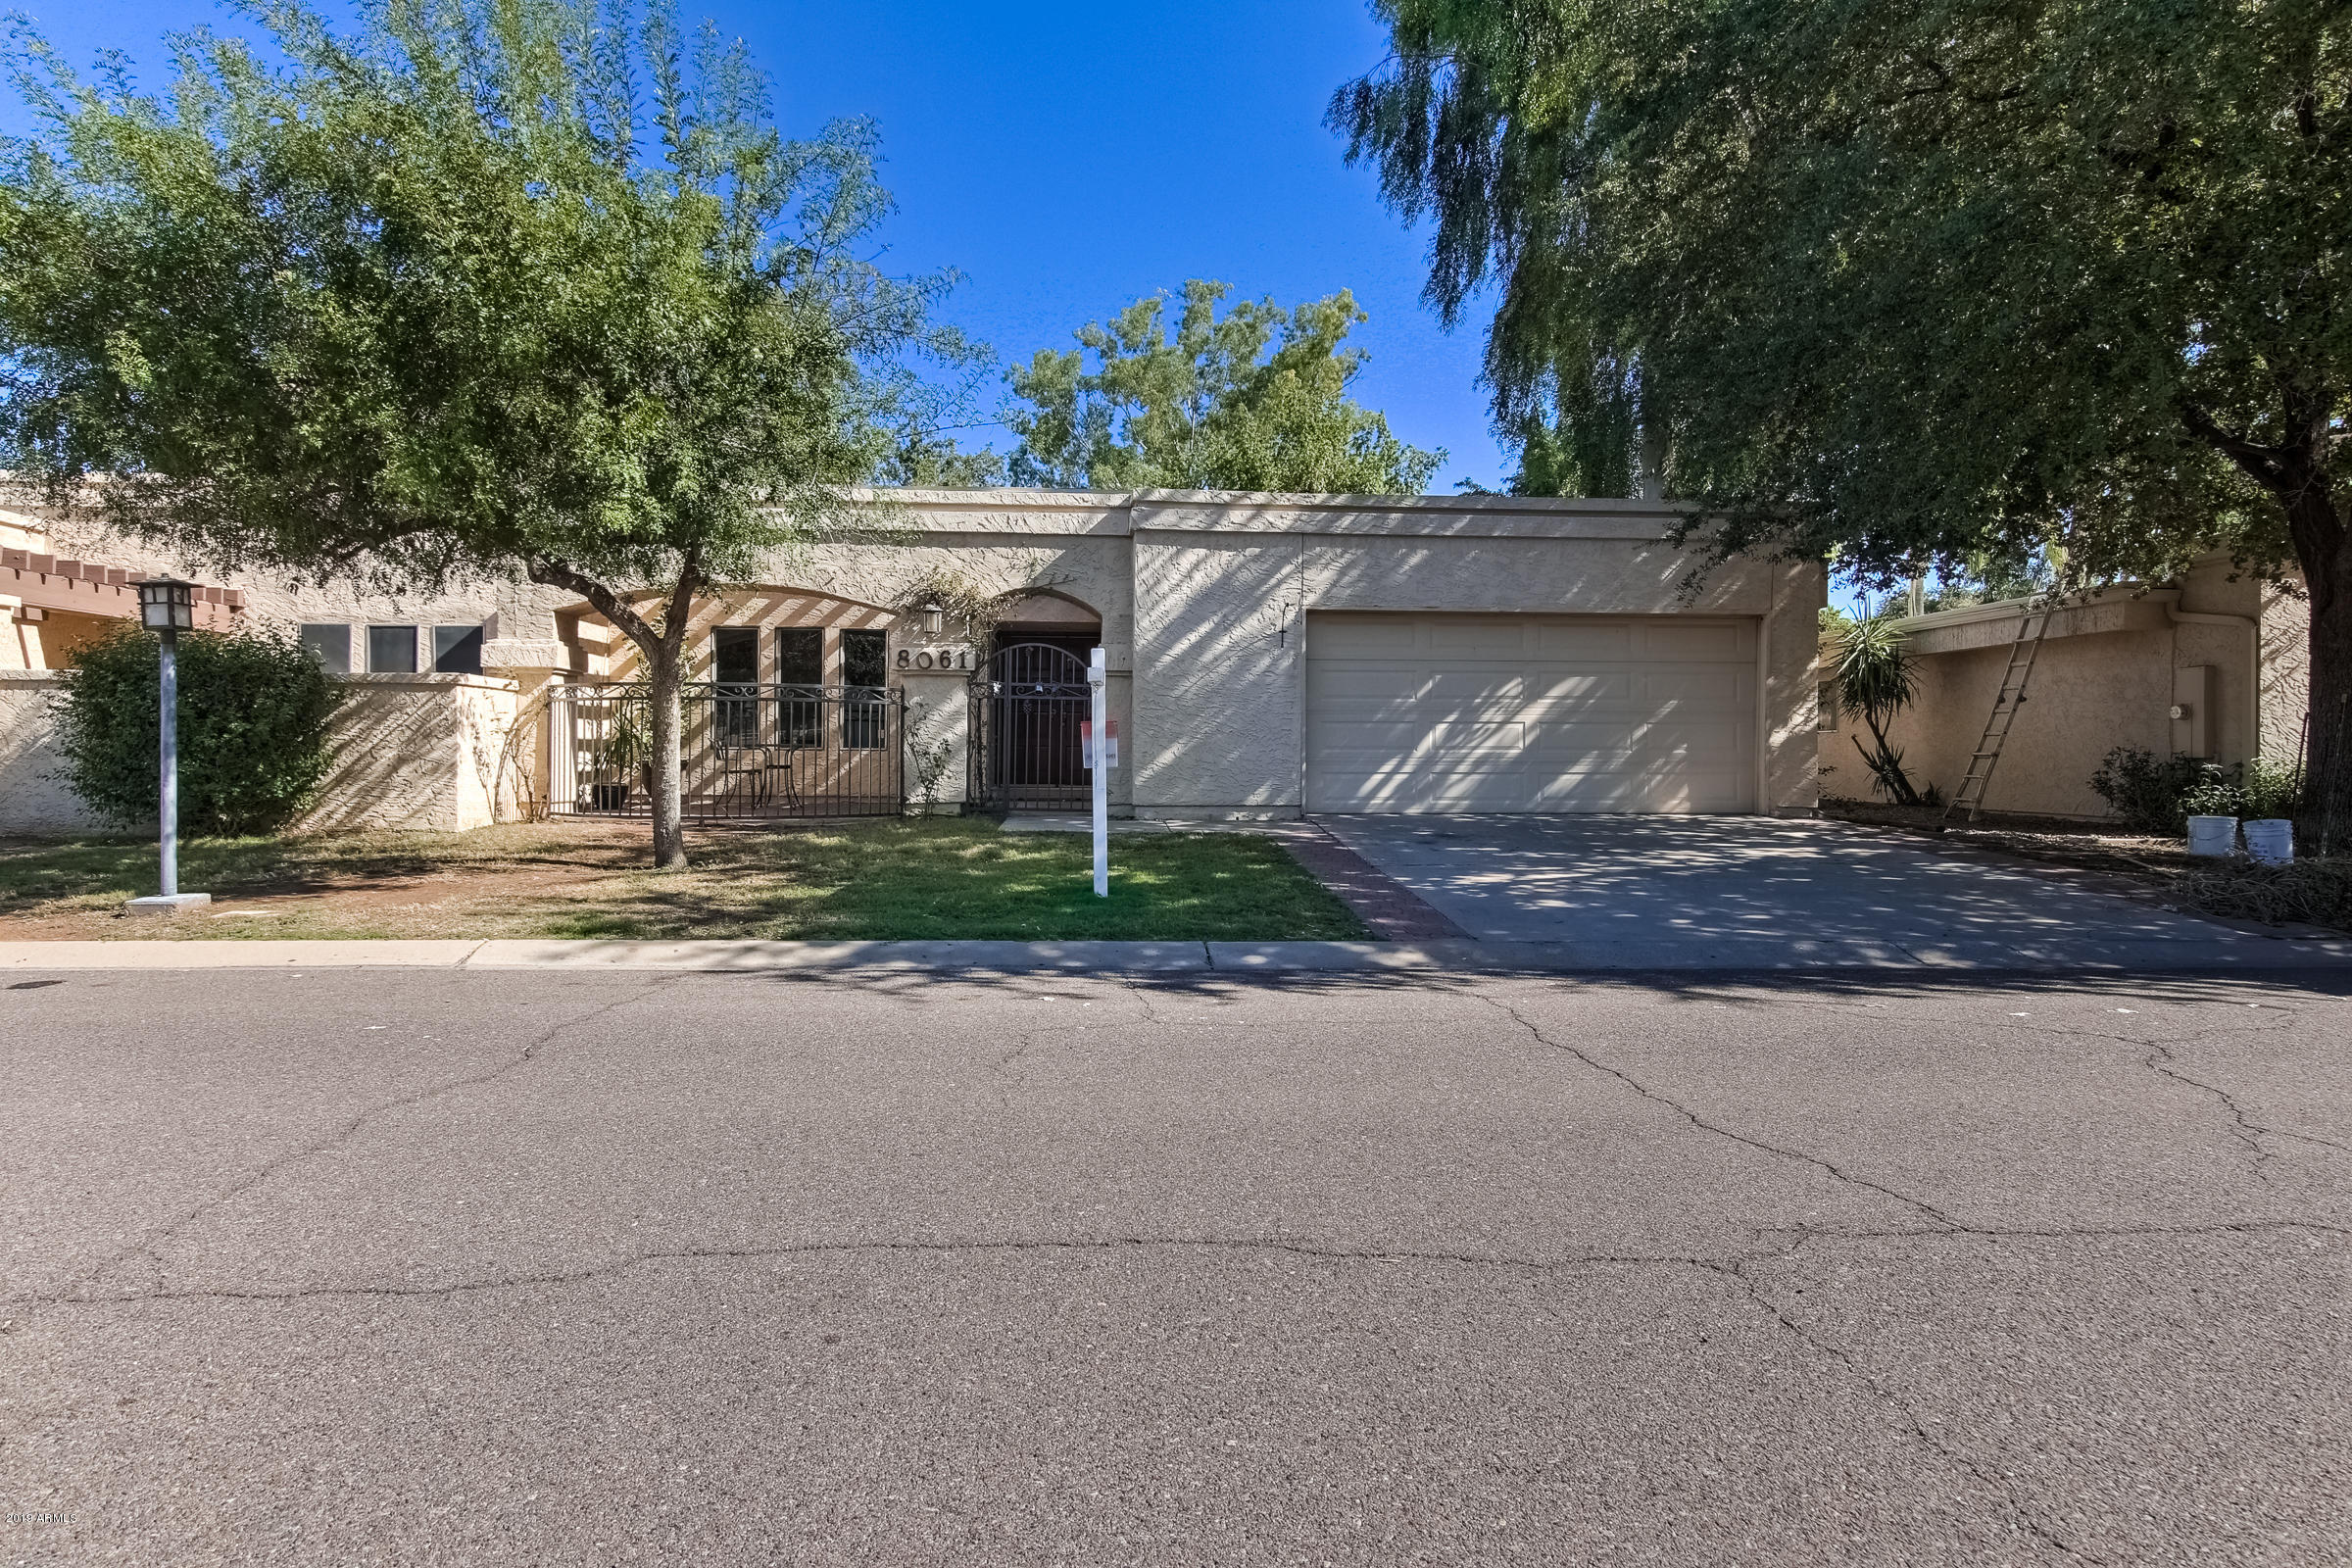 Photo of 8061 N Via Palma --, Scottsdale, AZ 85258